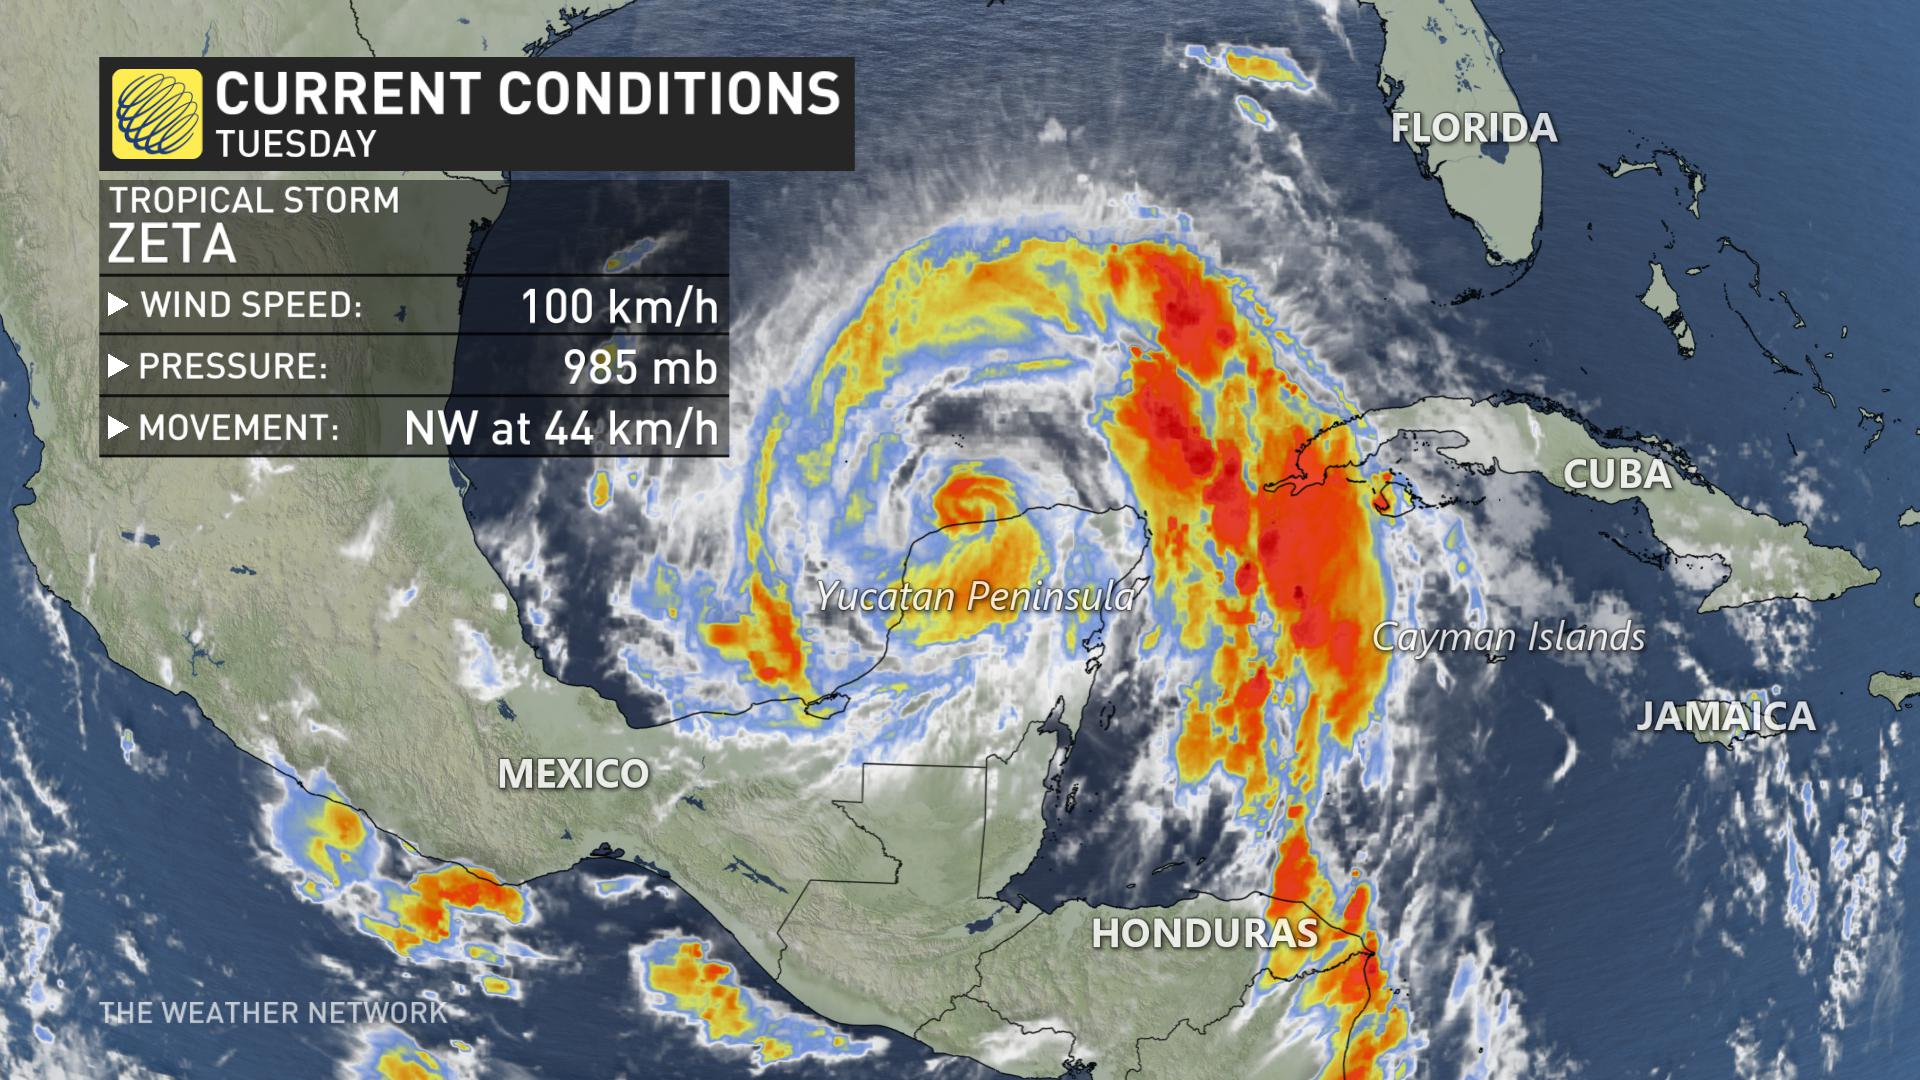 Tropical Storm Warning: Zeta In The Gulf, Expected To Become Hurricane Soon